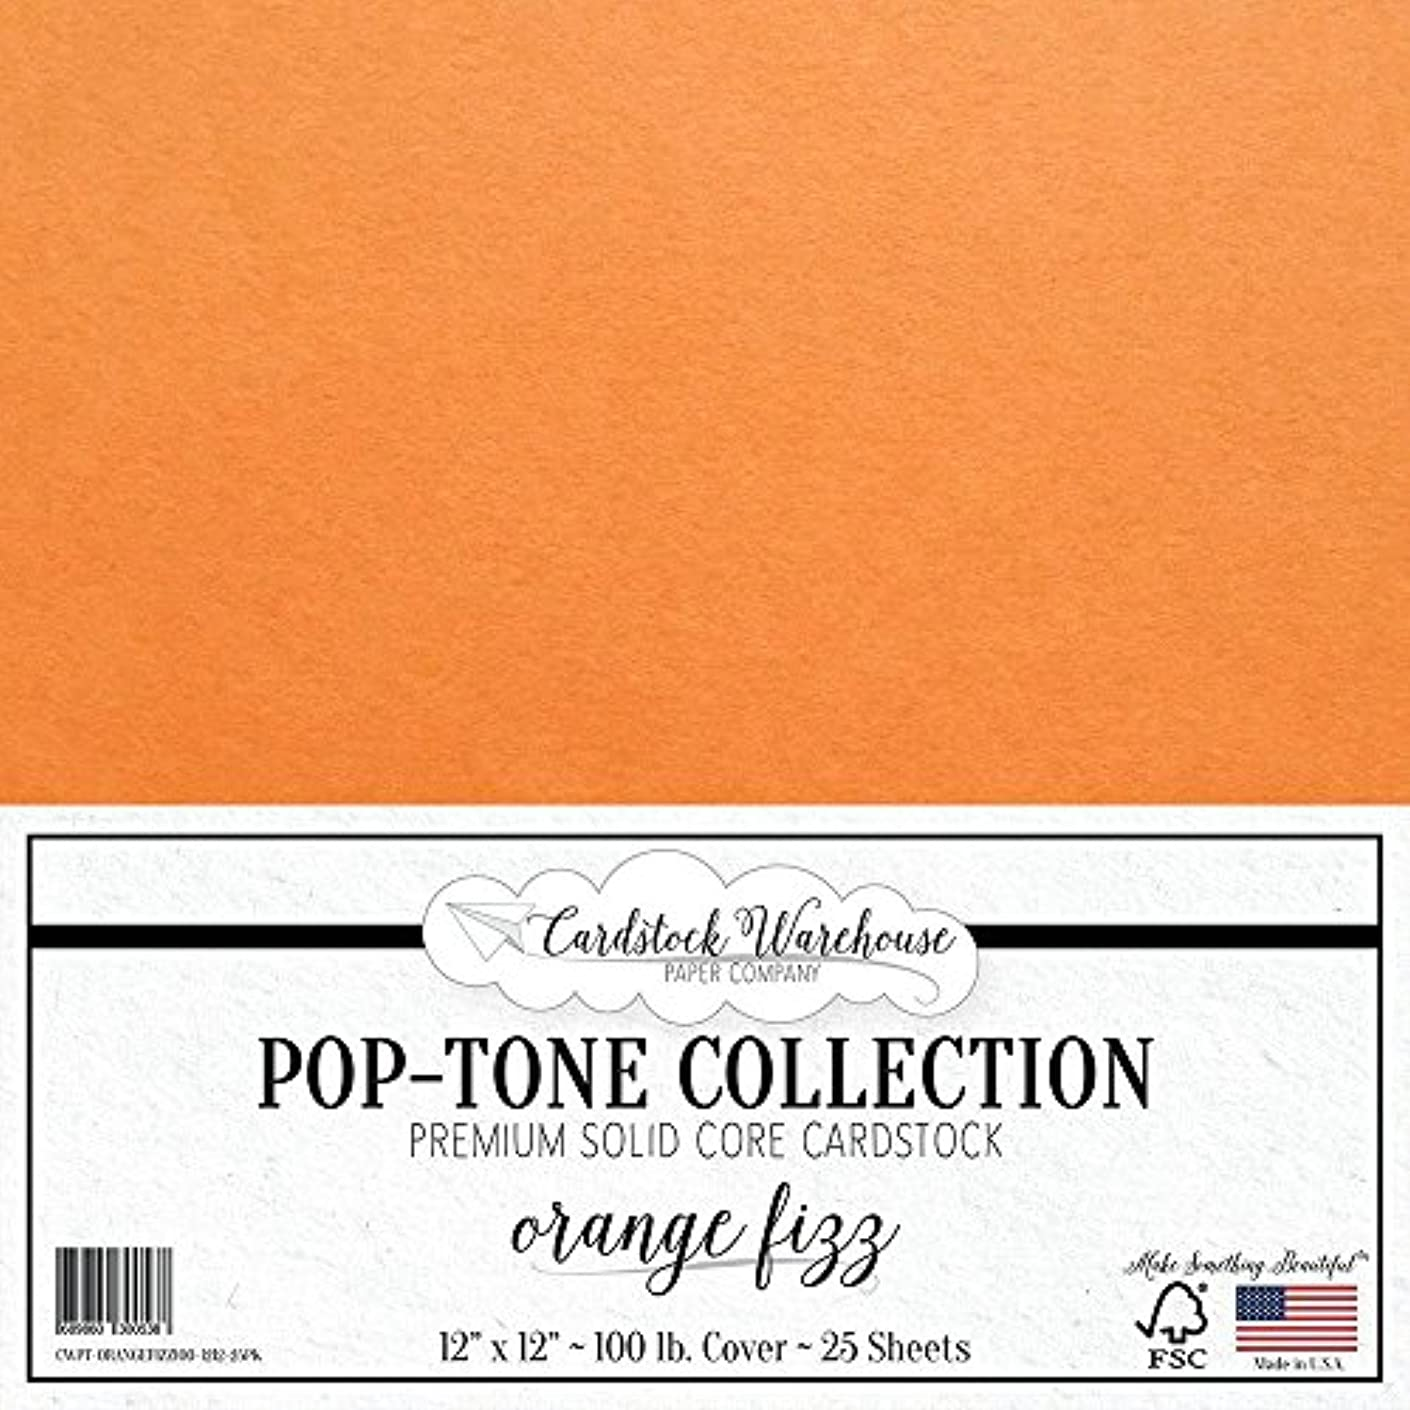 Orange Fizz Cardstock Paper - 12 x 12 inch 100 lb. Heavyweight Cover - 25 Sheets from Cardstock Warehouse